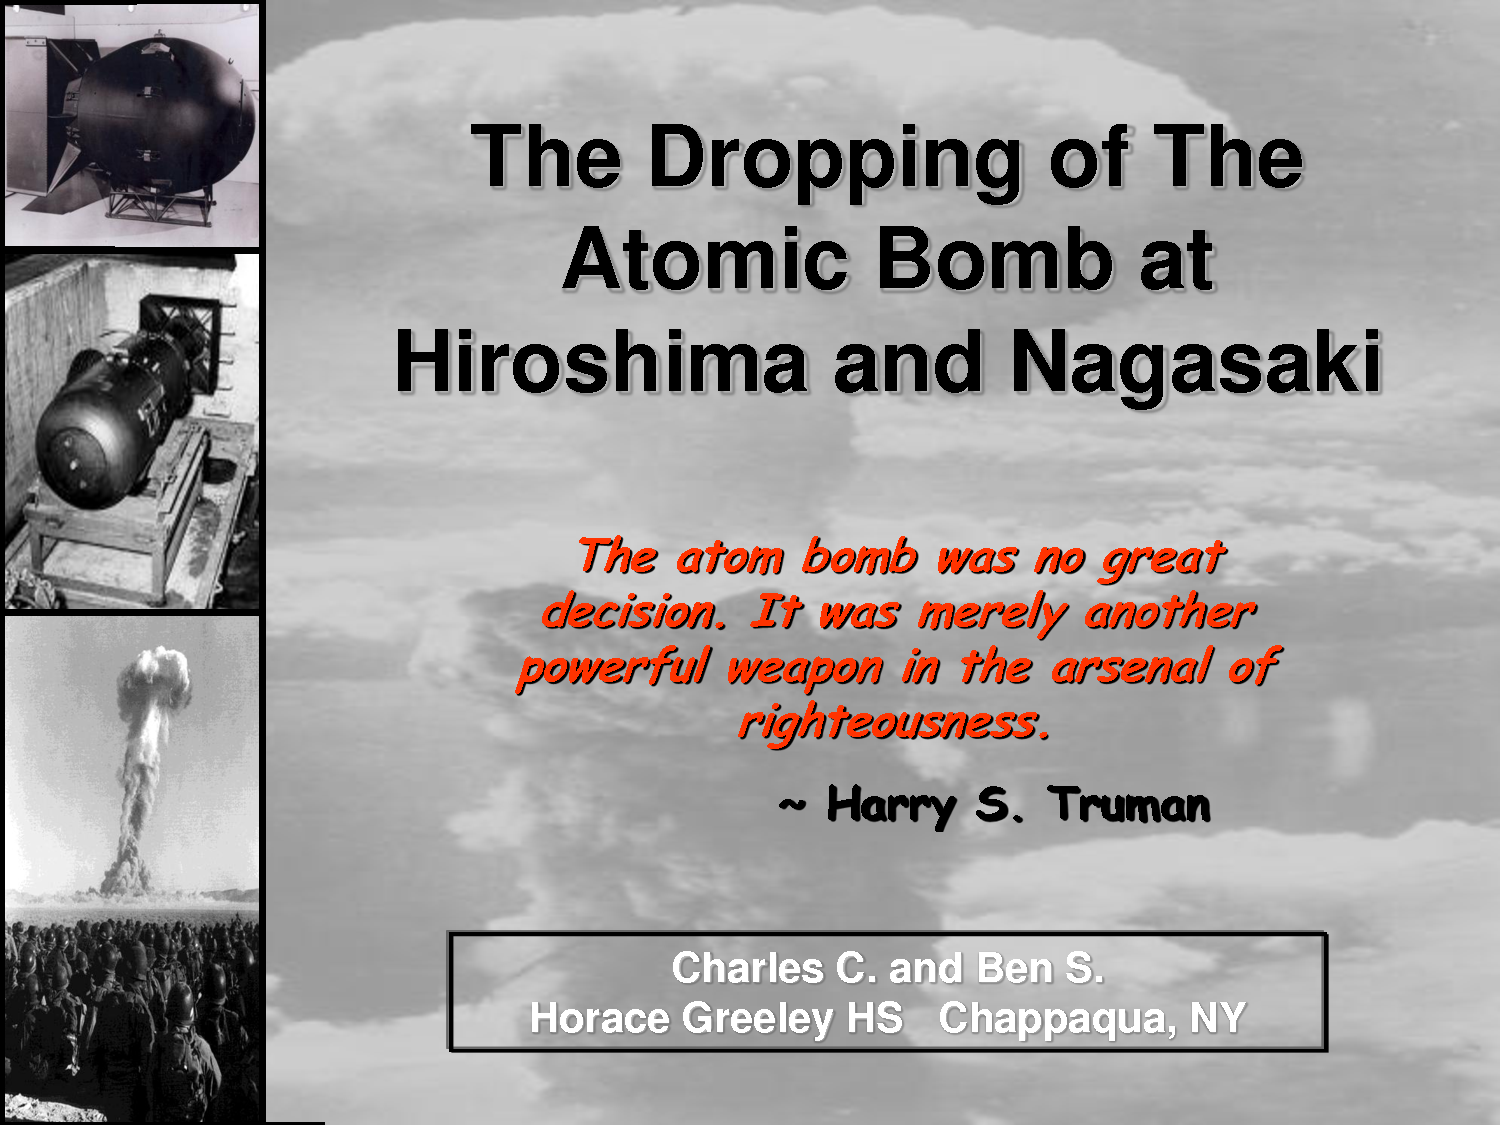 atomic bomb justified essay Many people detested the use of the atomic bombs as the mass murder of civilians was believed to be an inhumane act the aim of this investigation is to find out whether america's decision to drop the atomic bombs on japan was justified.